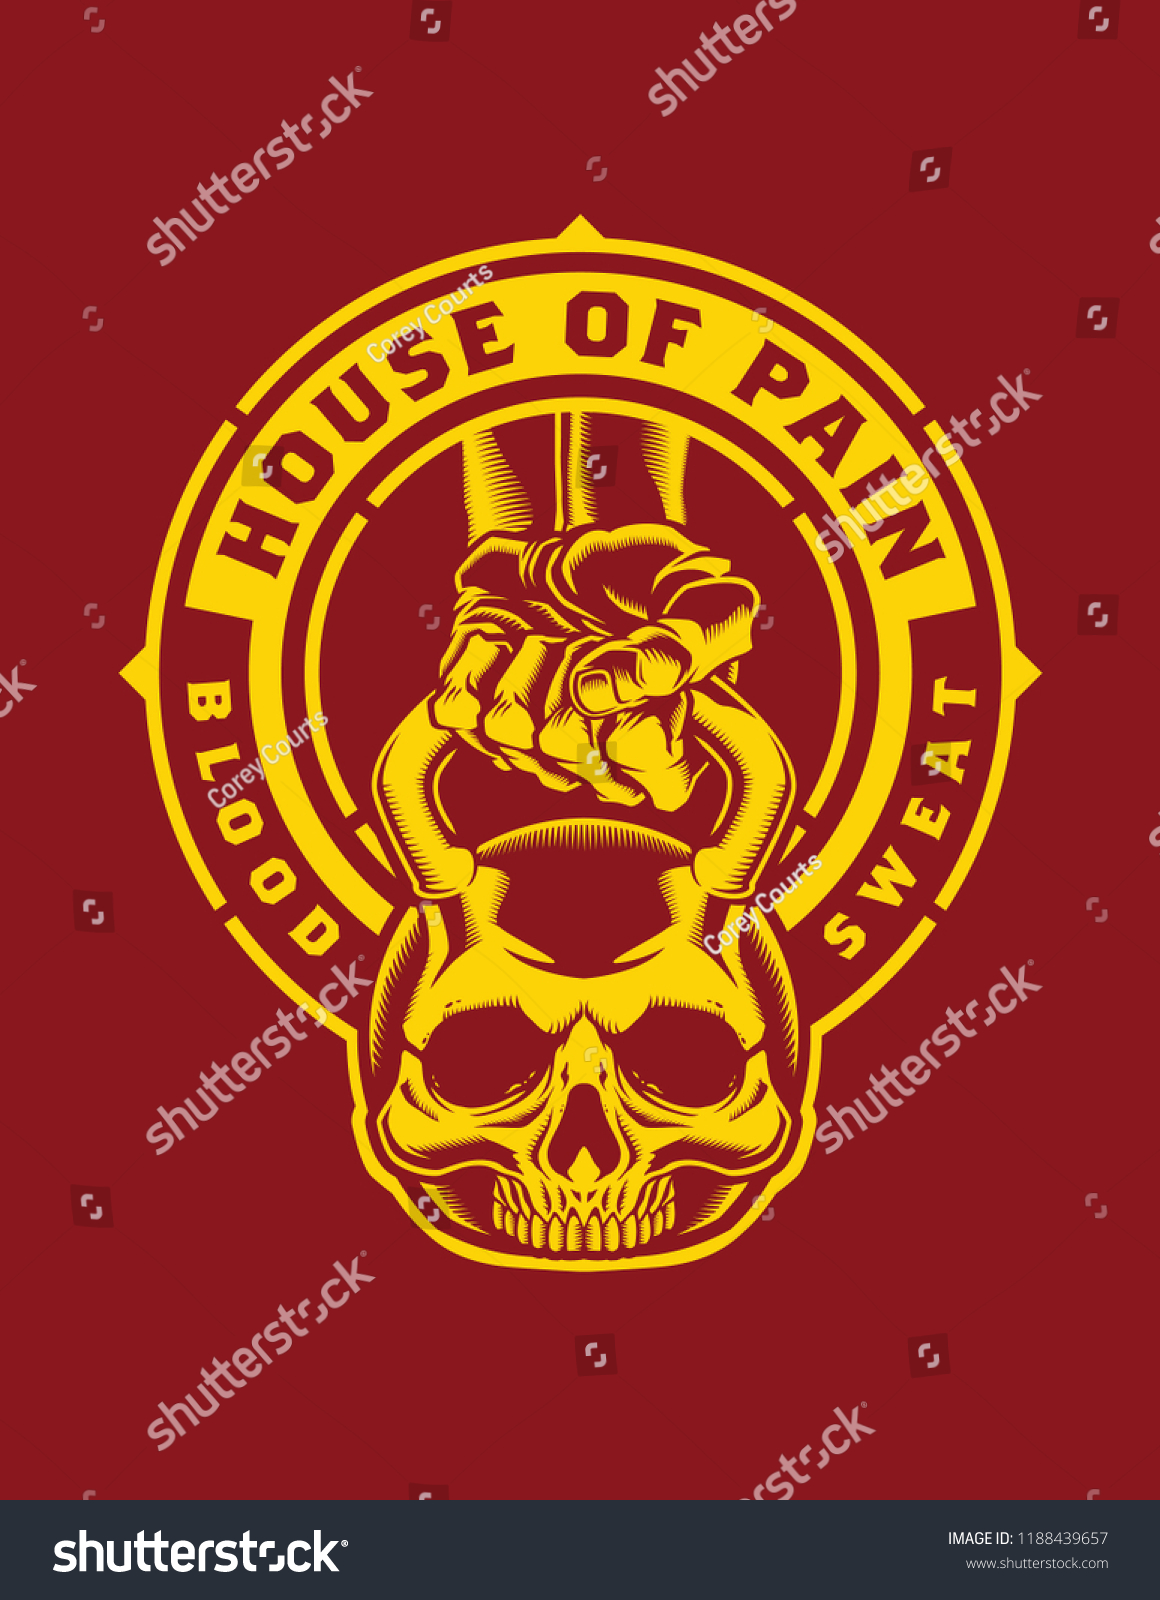 House Of Pain Logo : house, House, Stock, Vector, (Royalty, Free), 1188439657